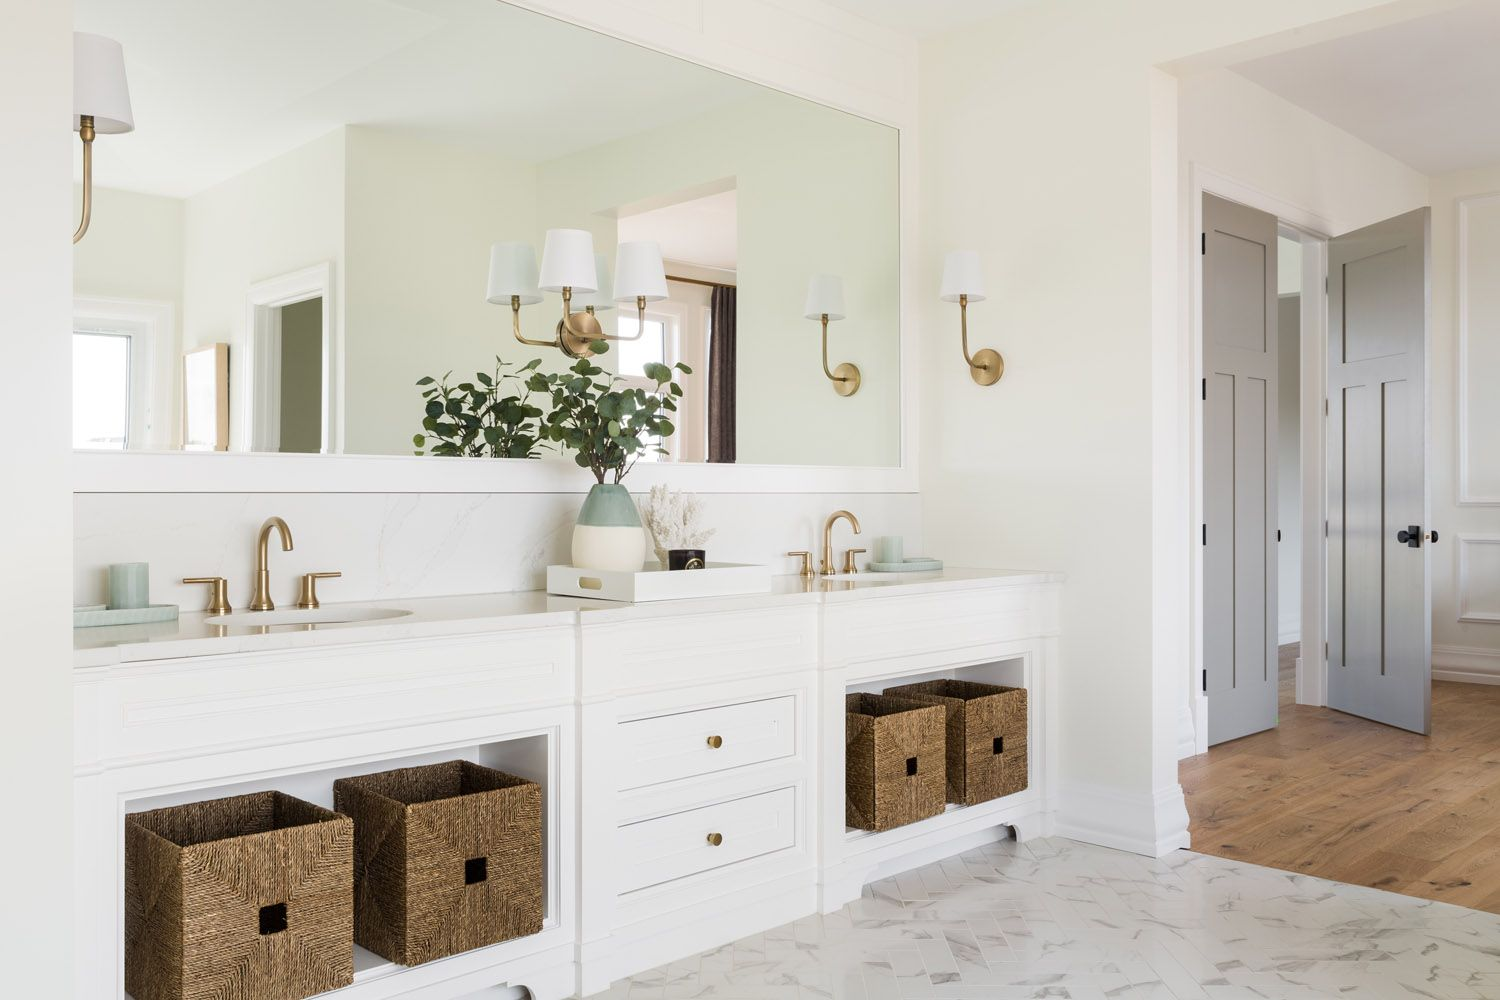 A Dreamy Modern Meets Traditional Show Home In Calgary Luxury Master Bathrooms Home Remodeling Modern Meets Traditional